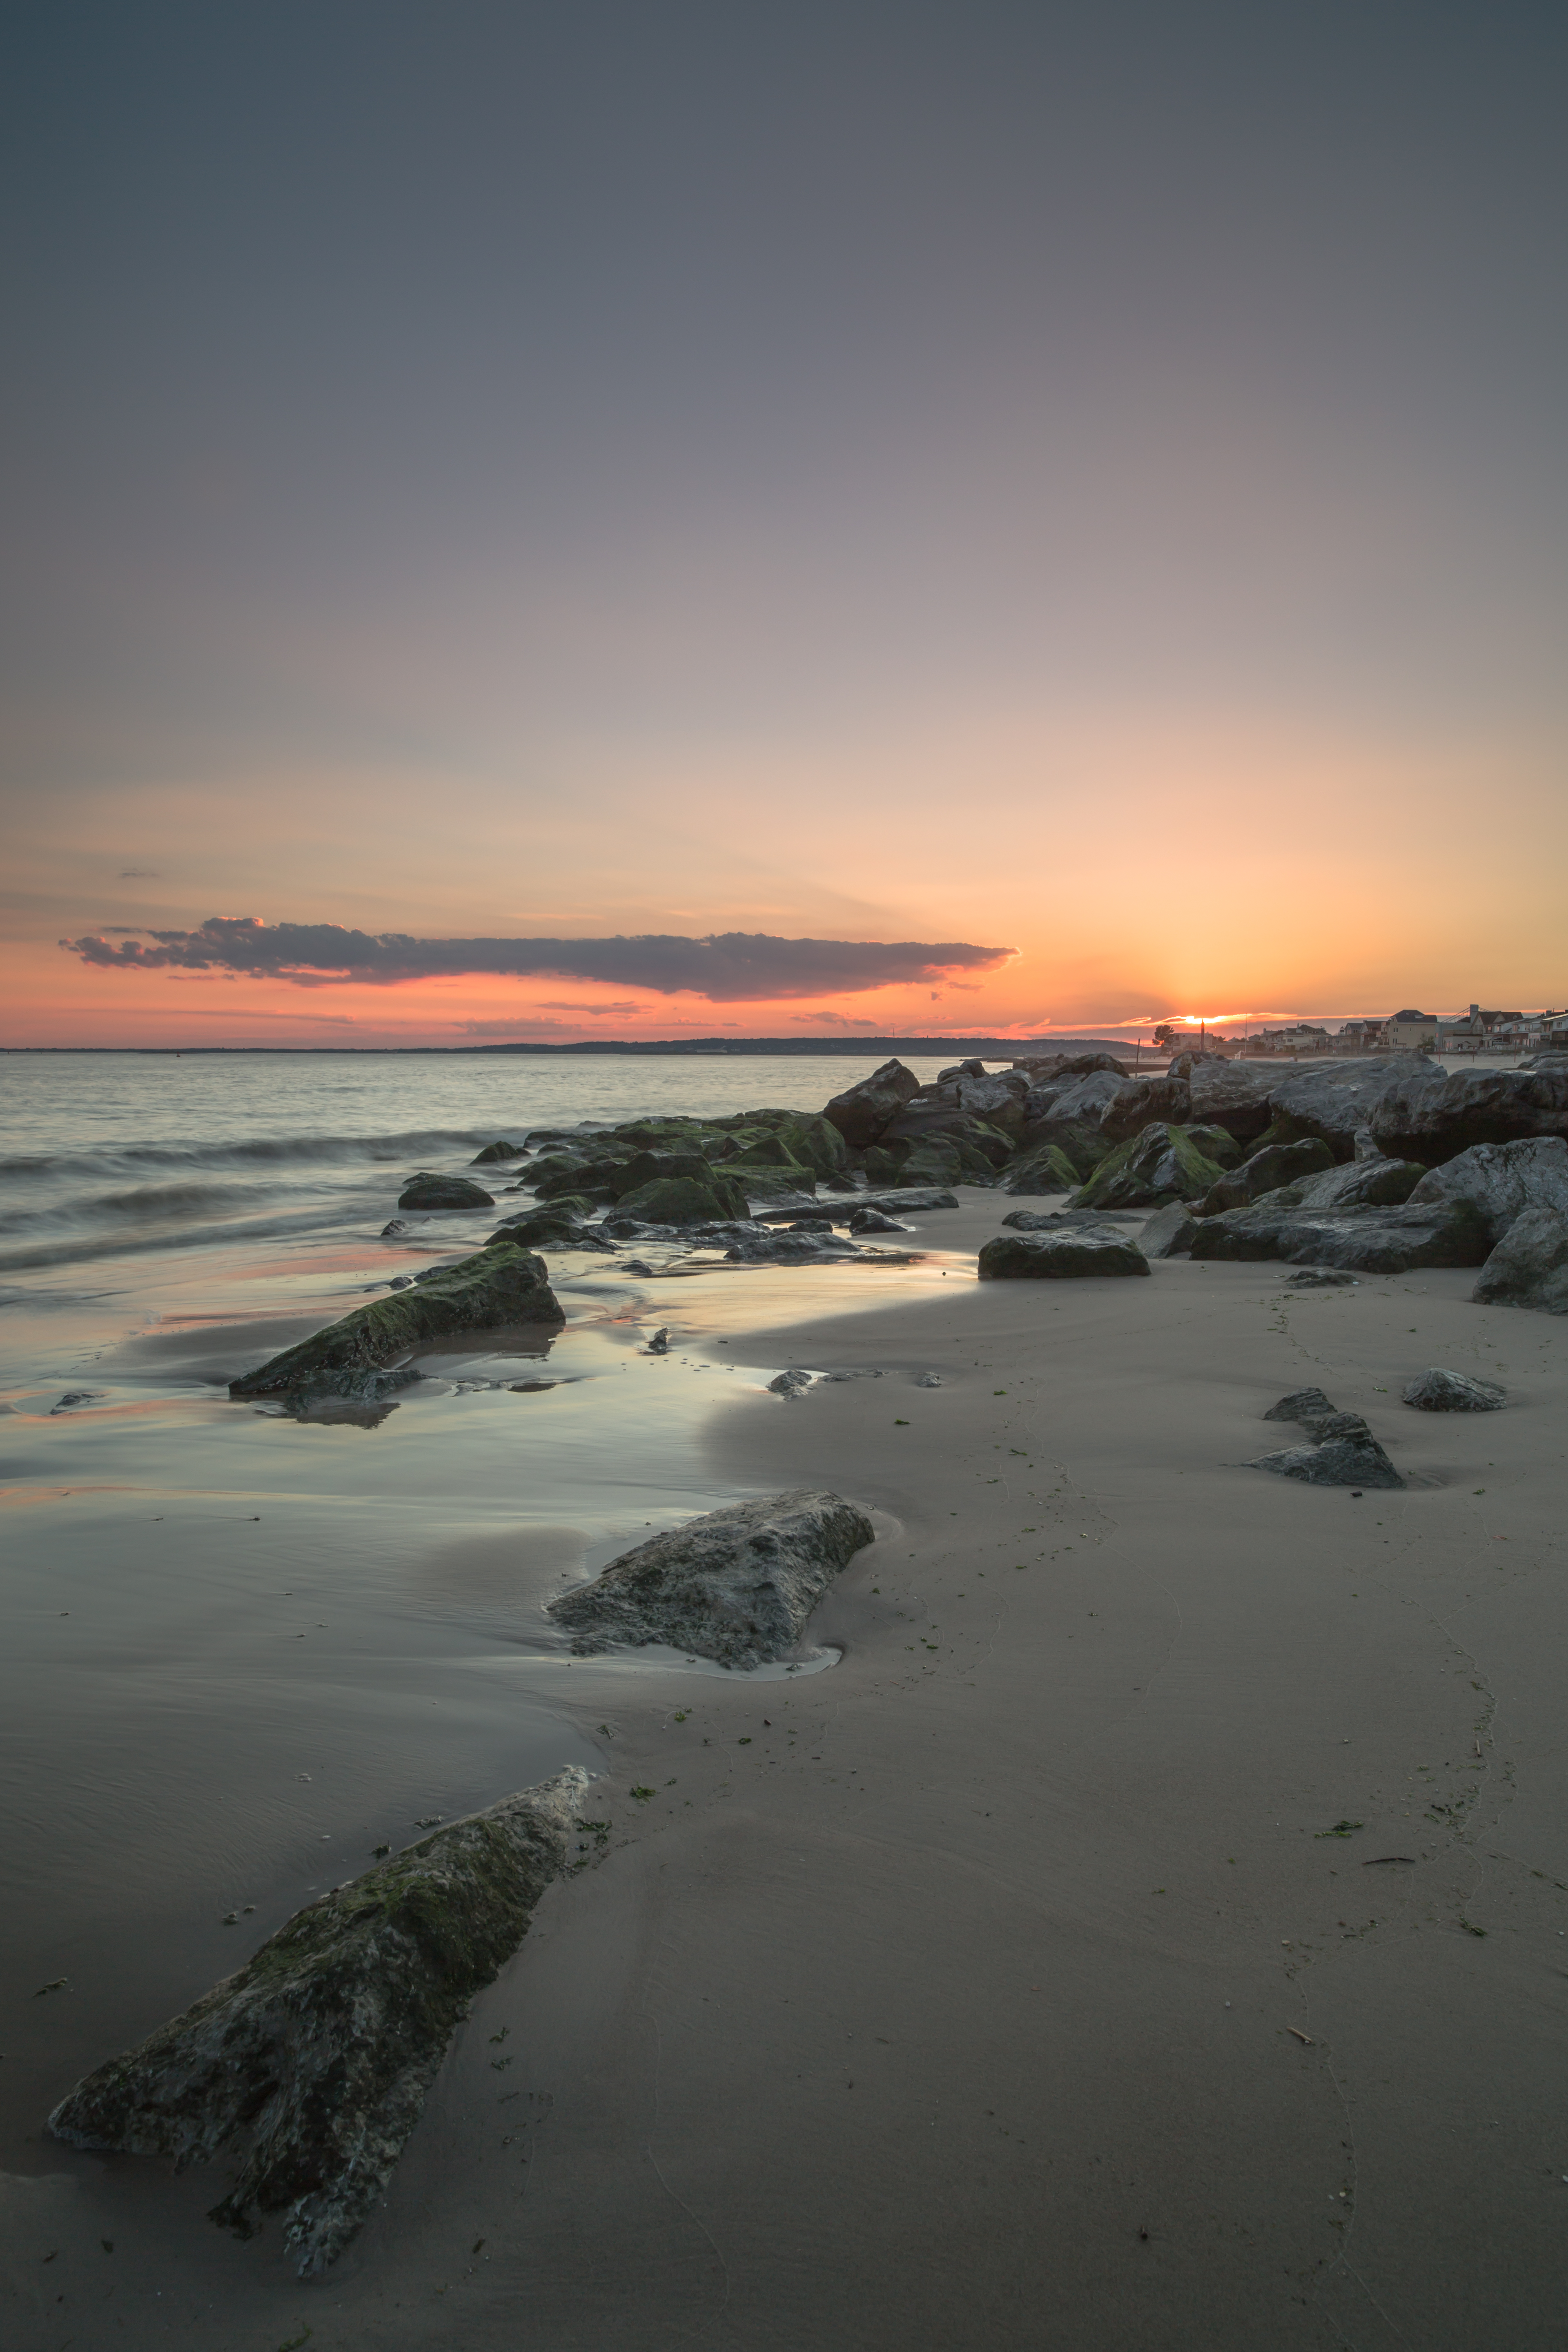 Sunset on the beach with rocks  example image 1